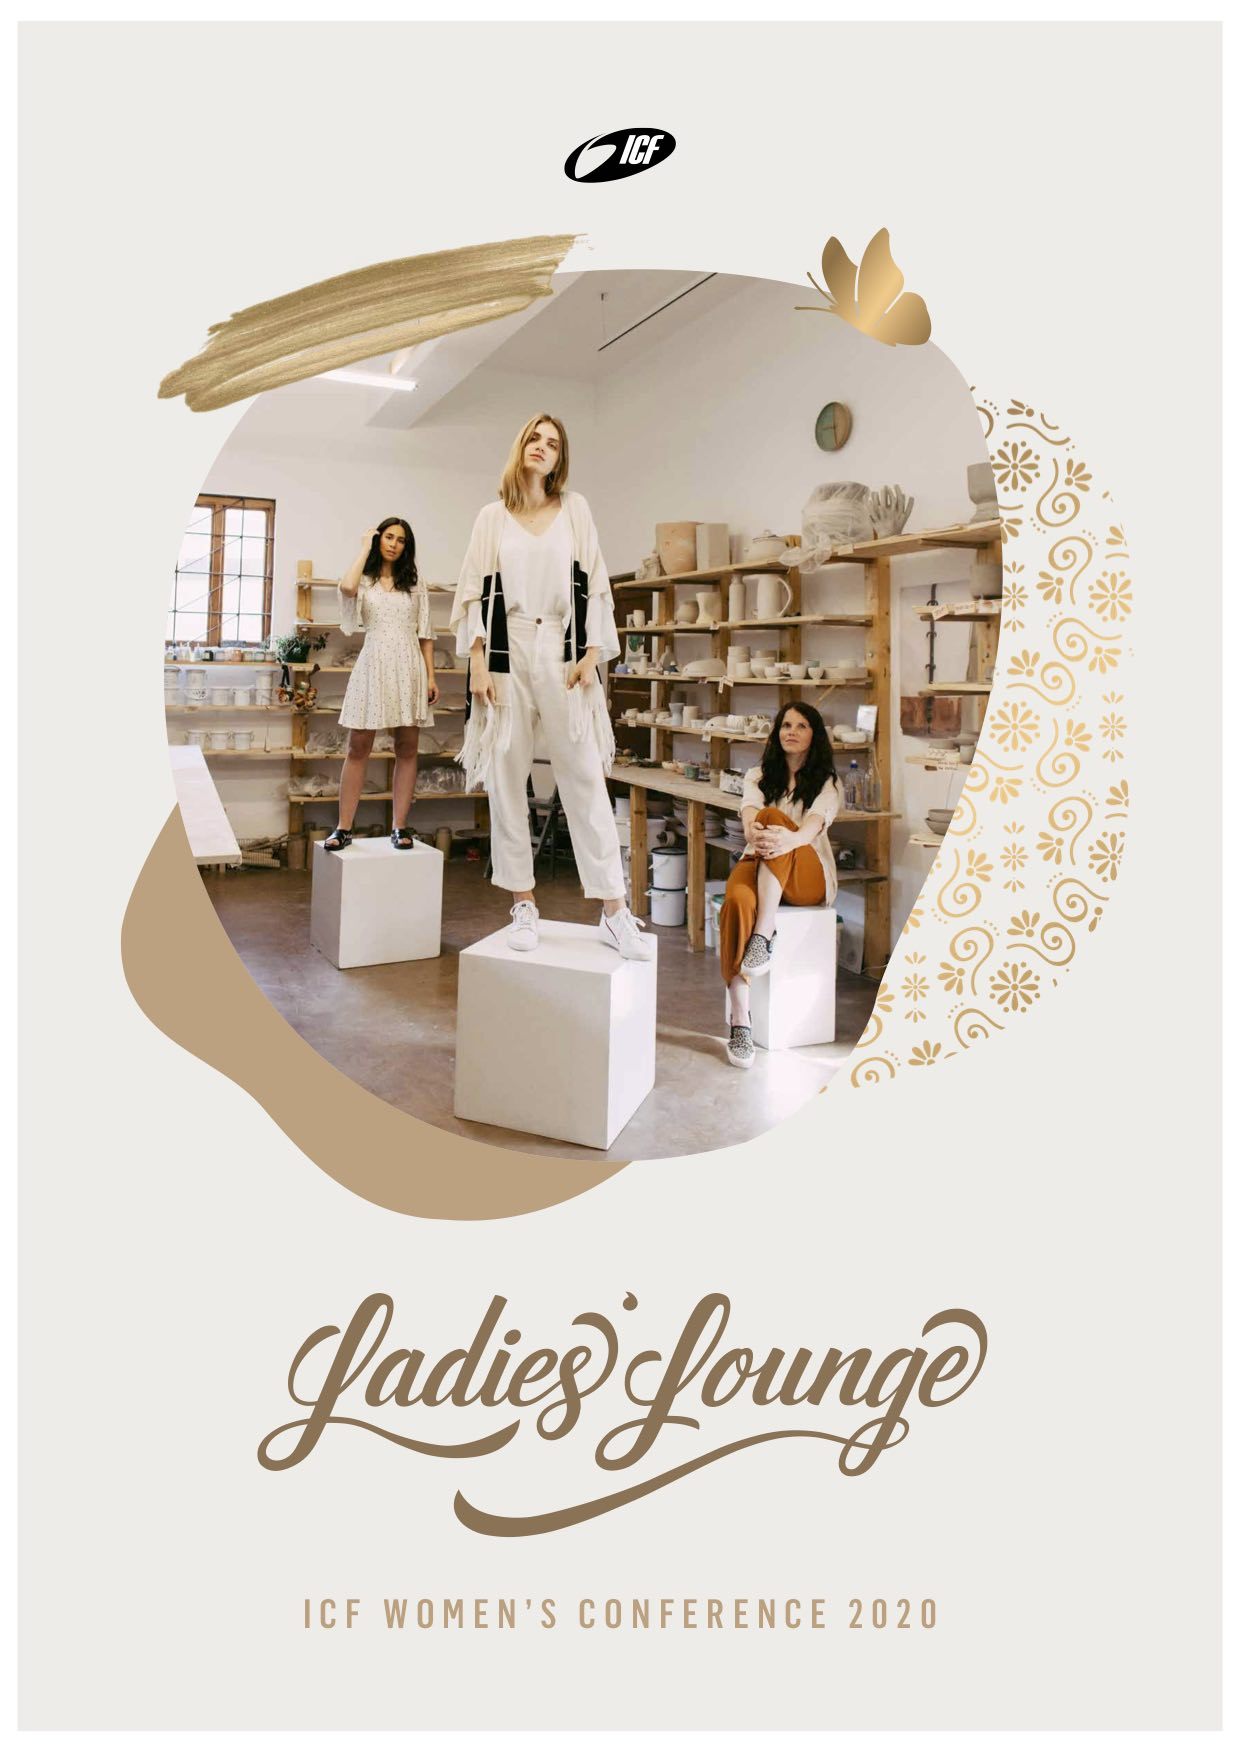 ICF Ladies Lounge 2020